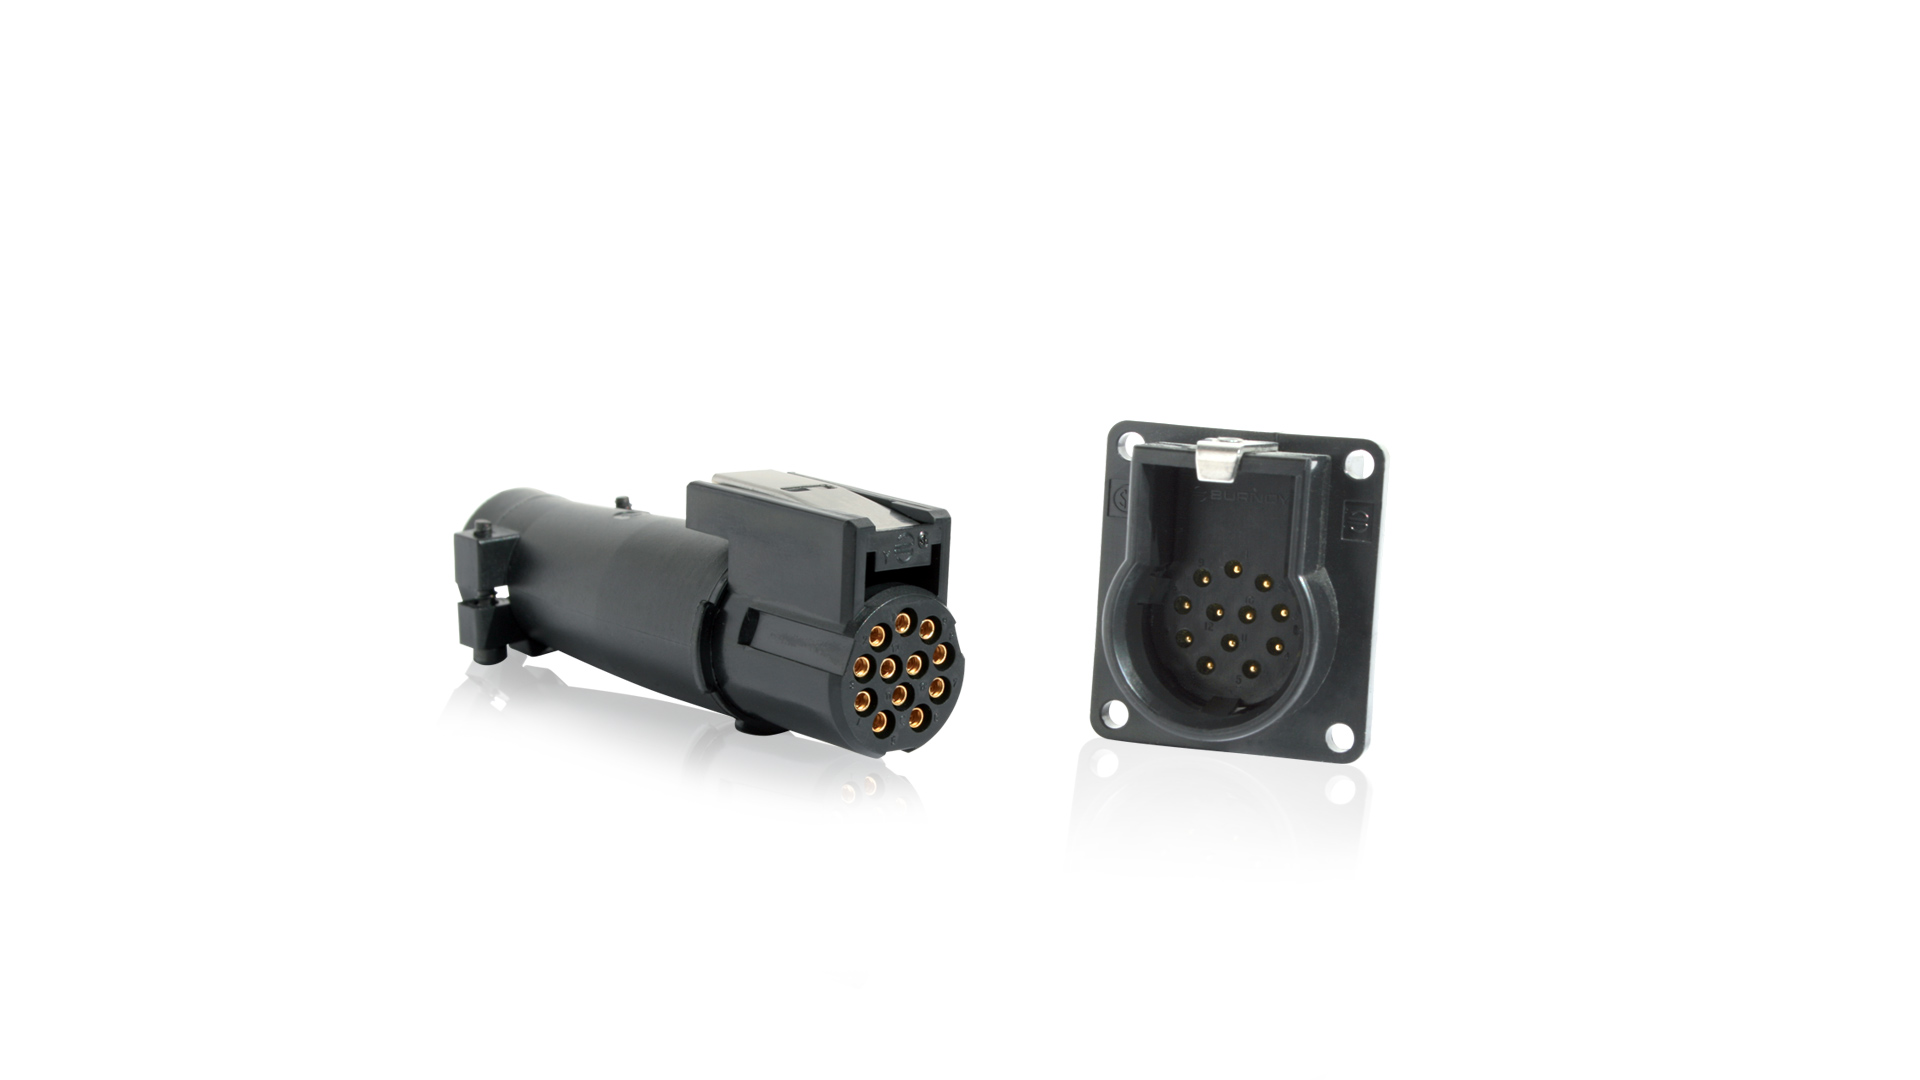 MBG series, MBG connector, MBG connectors